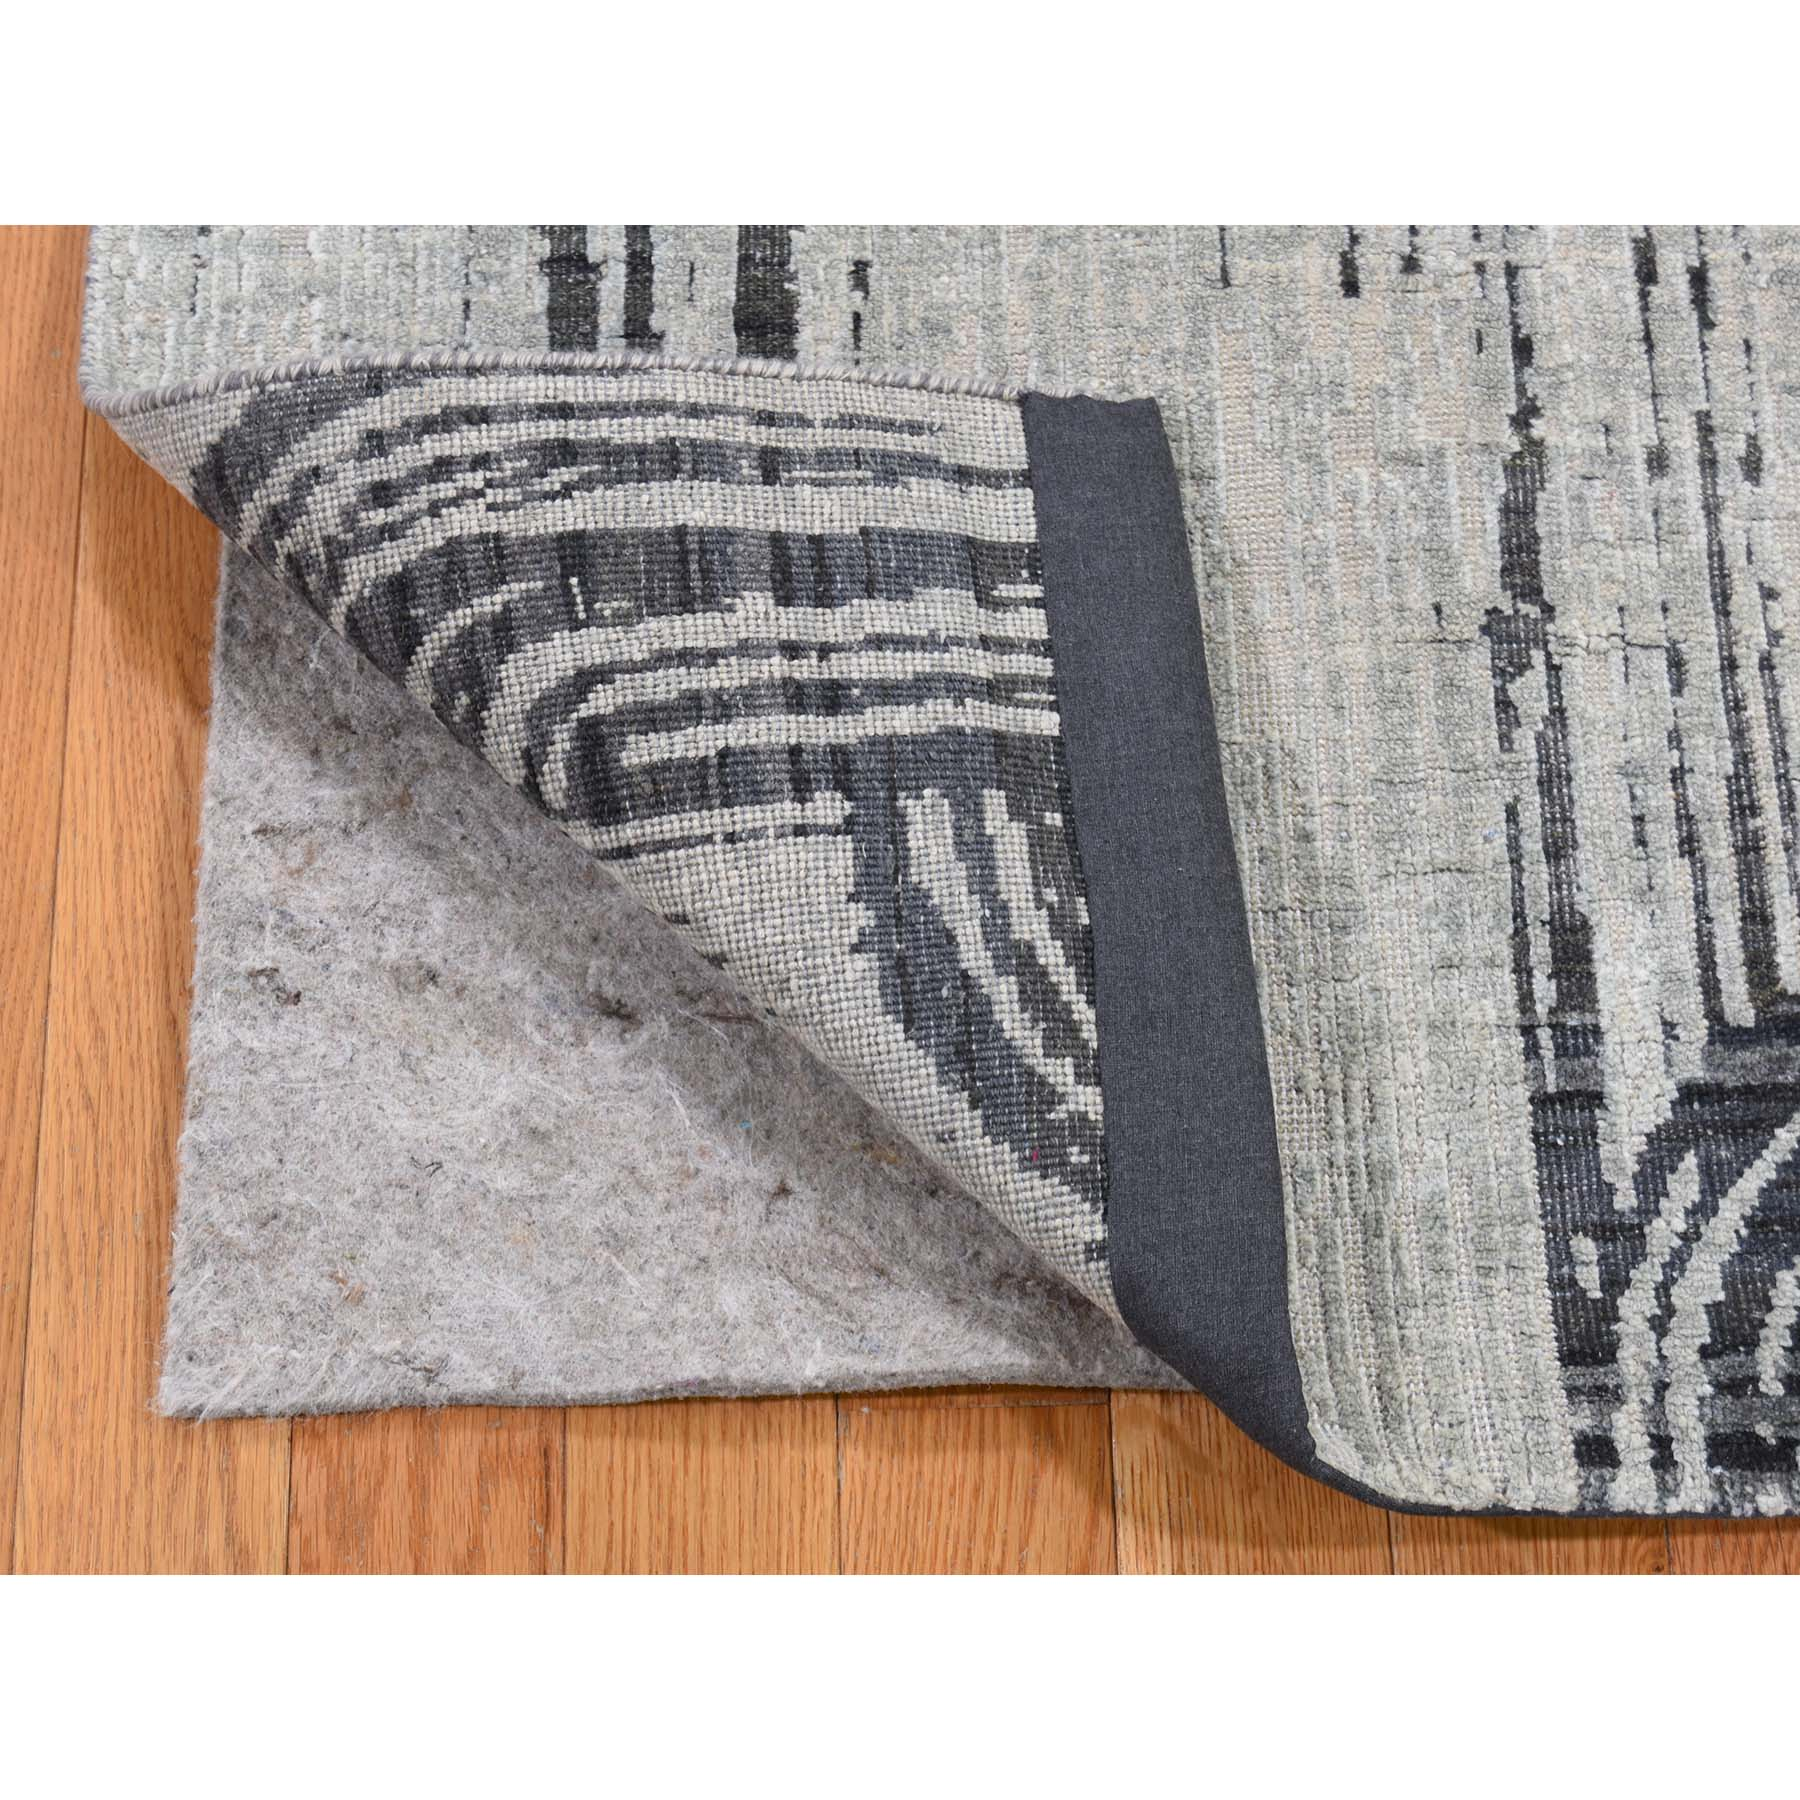 2-7 x8- THE CANE Pure Silk With Textured Wool  Hand-Knotted Runner Oriental Rug